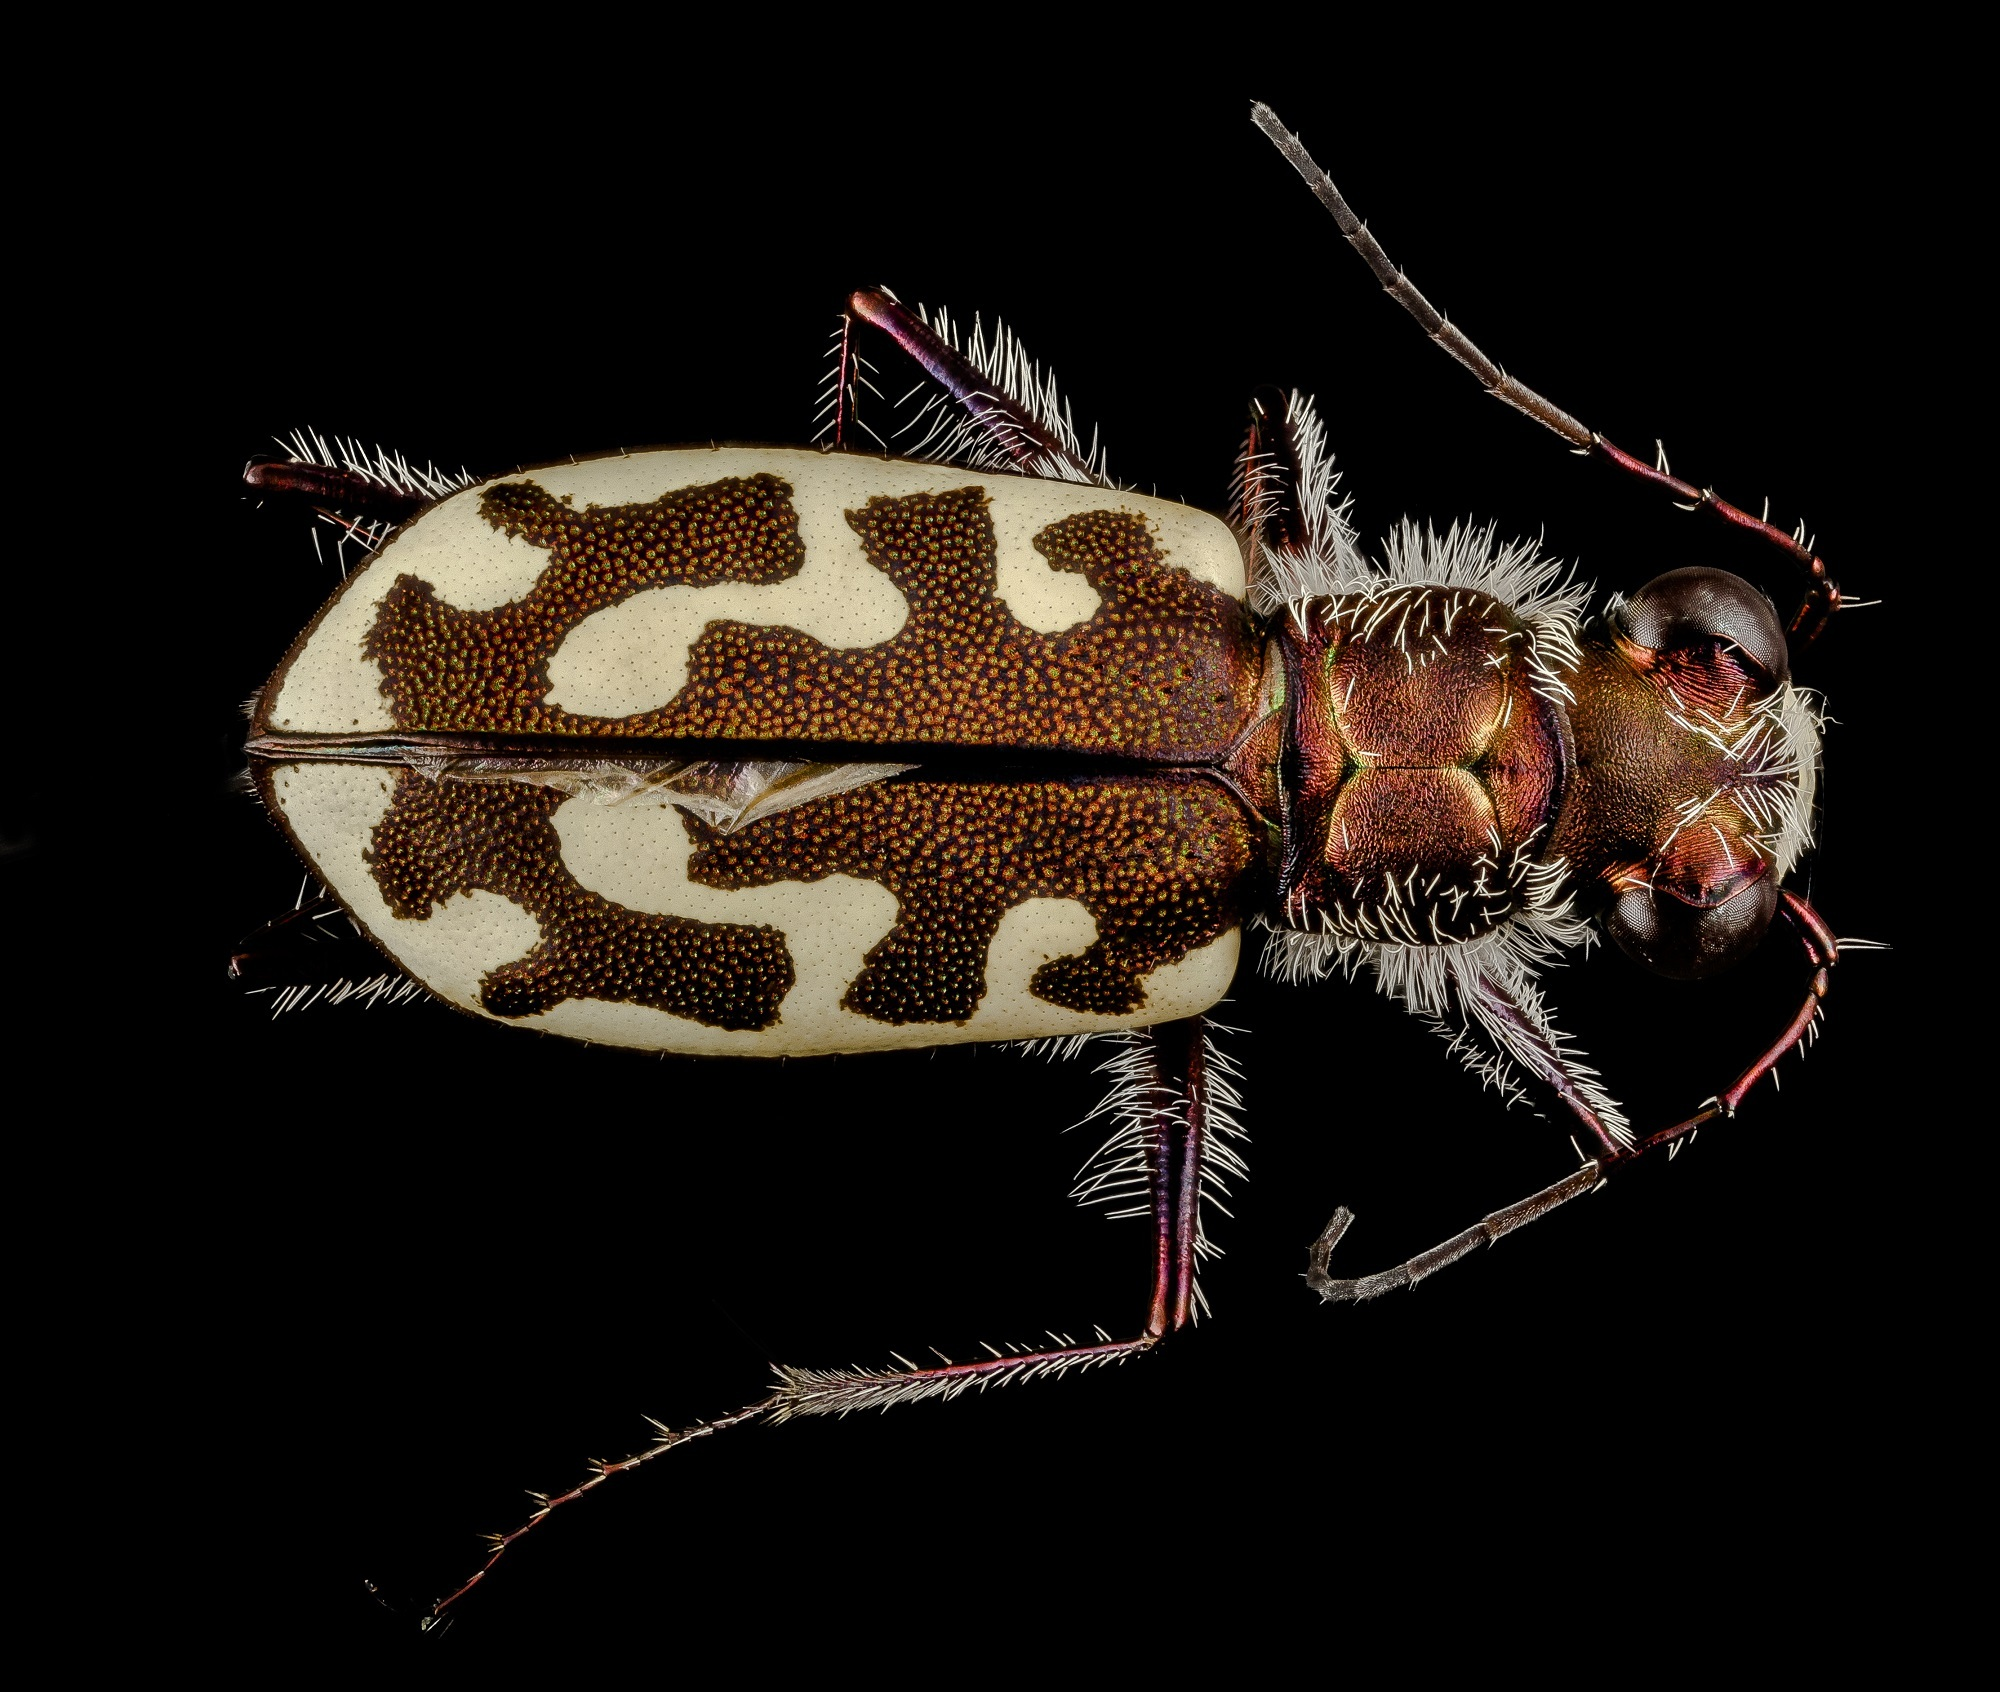 Tiger Beetle, Animal, Beetle, Insect, Nature, HQ Photo